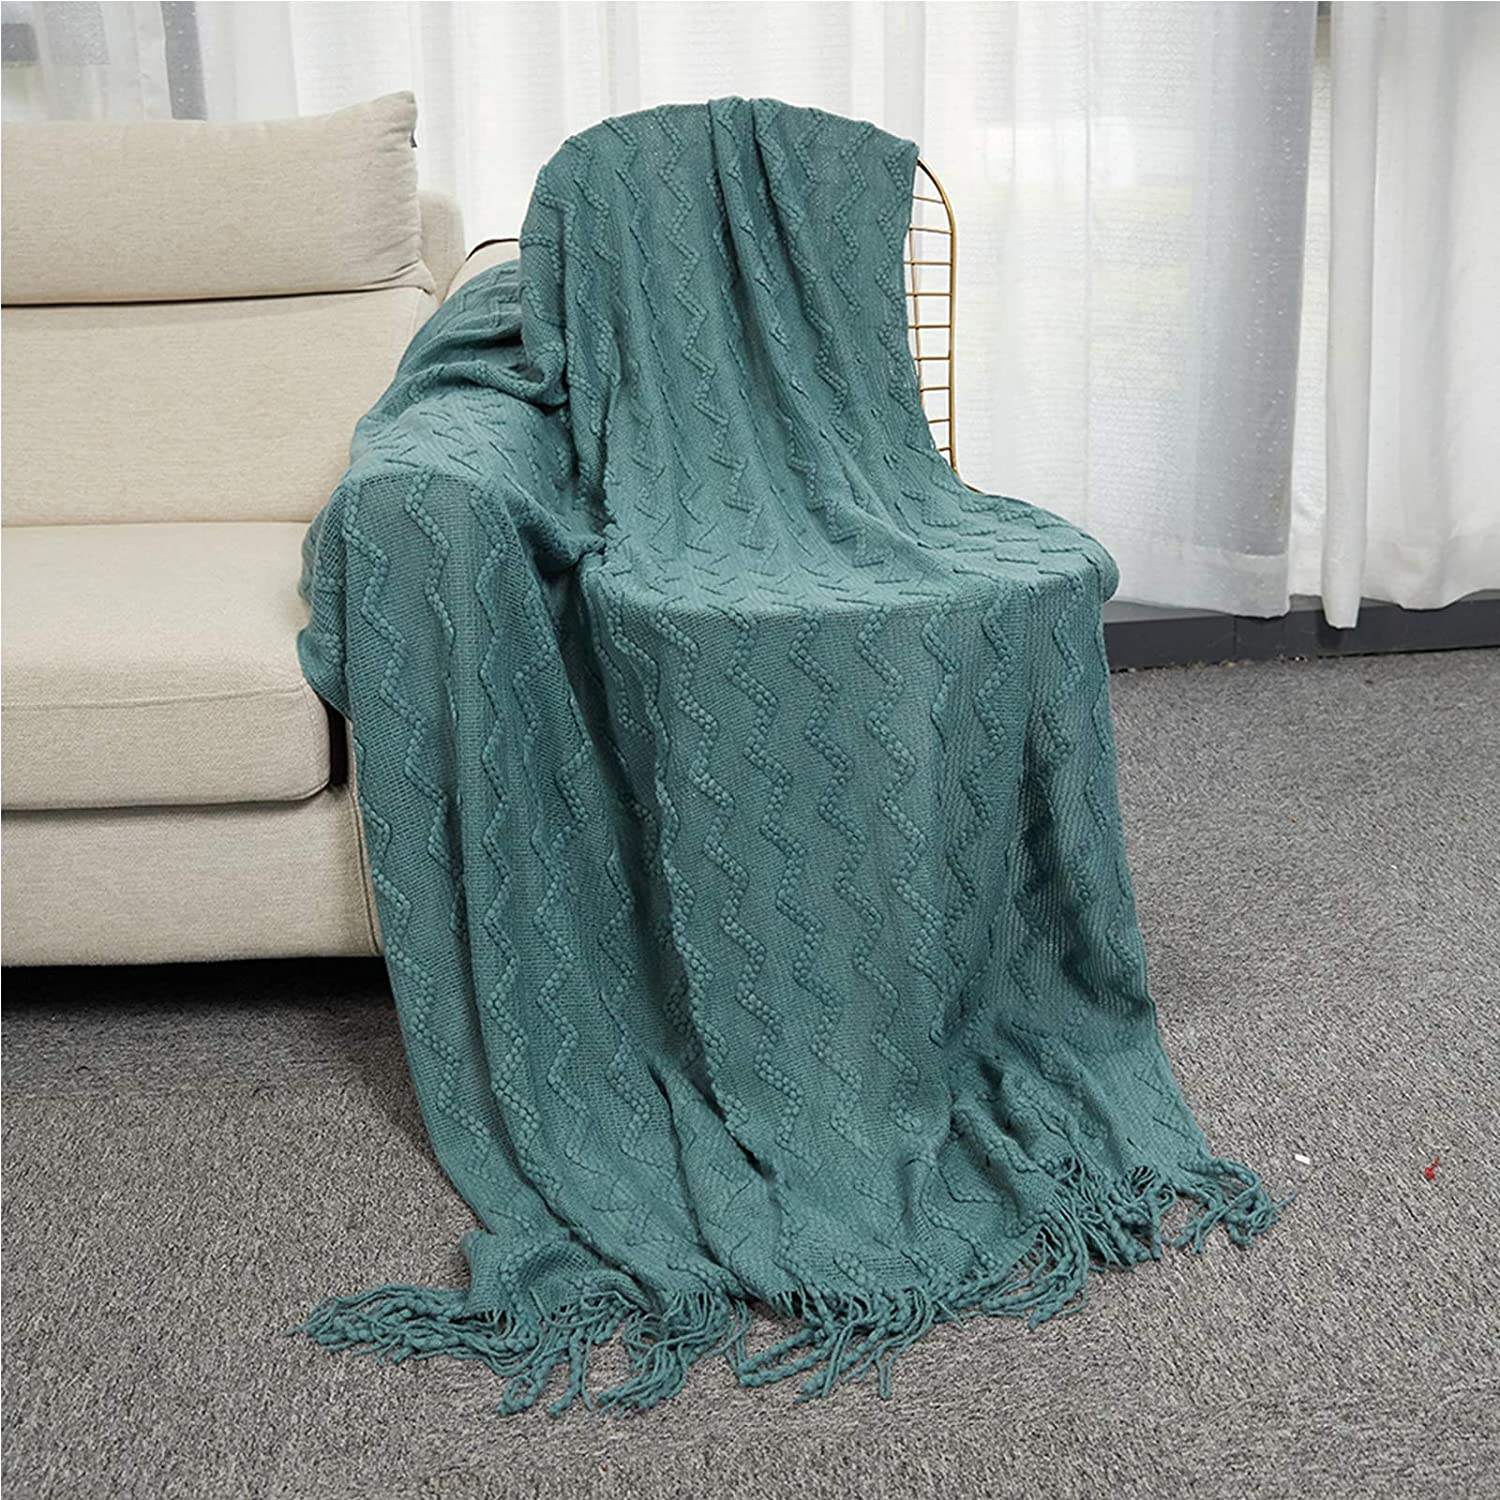 INSHERE Dark Green Solid Color Knit Woven Throw Blanket with Tassels Fringe Soft Warm Lightweight Cover Autumn Home Decor Decorative for Couch Bed Chair Sofa Living Room 49''x78'': Kitchen & Dining